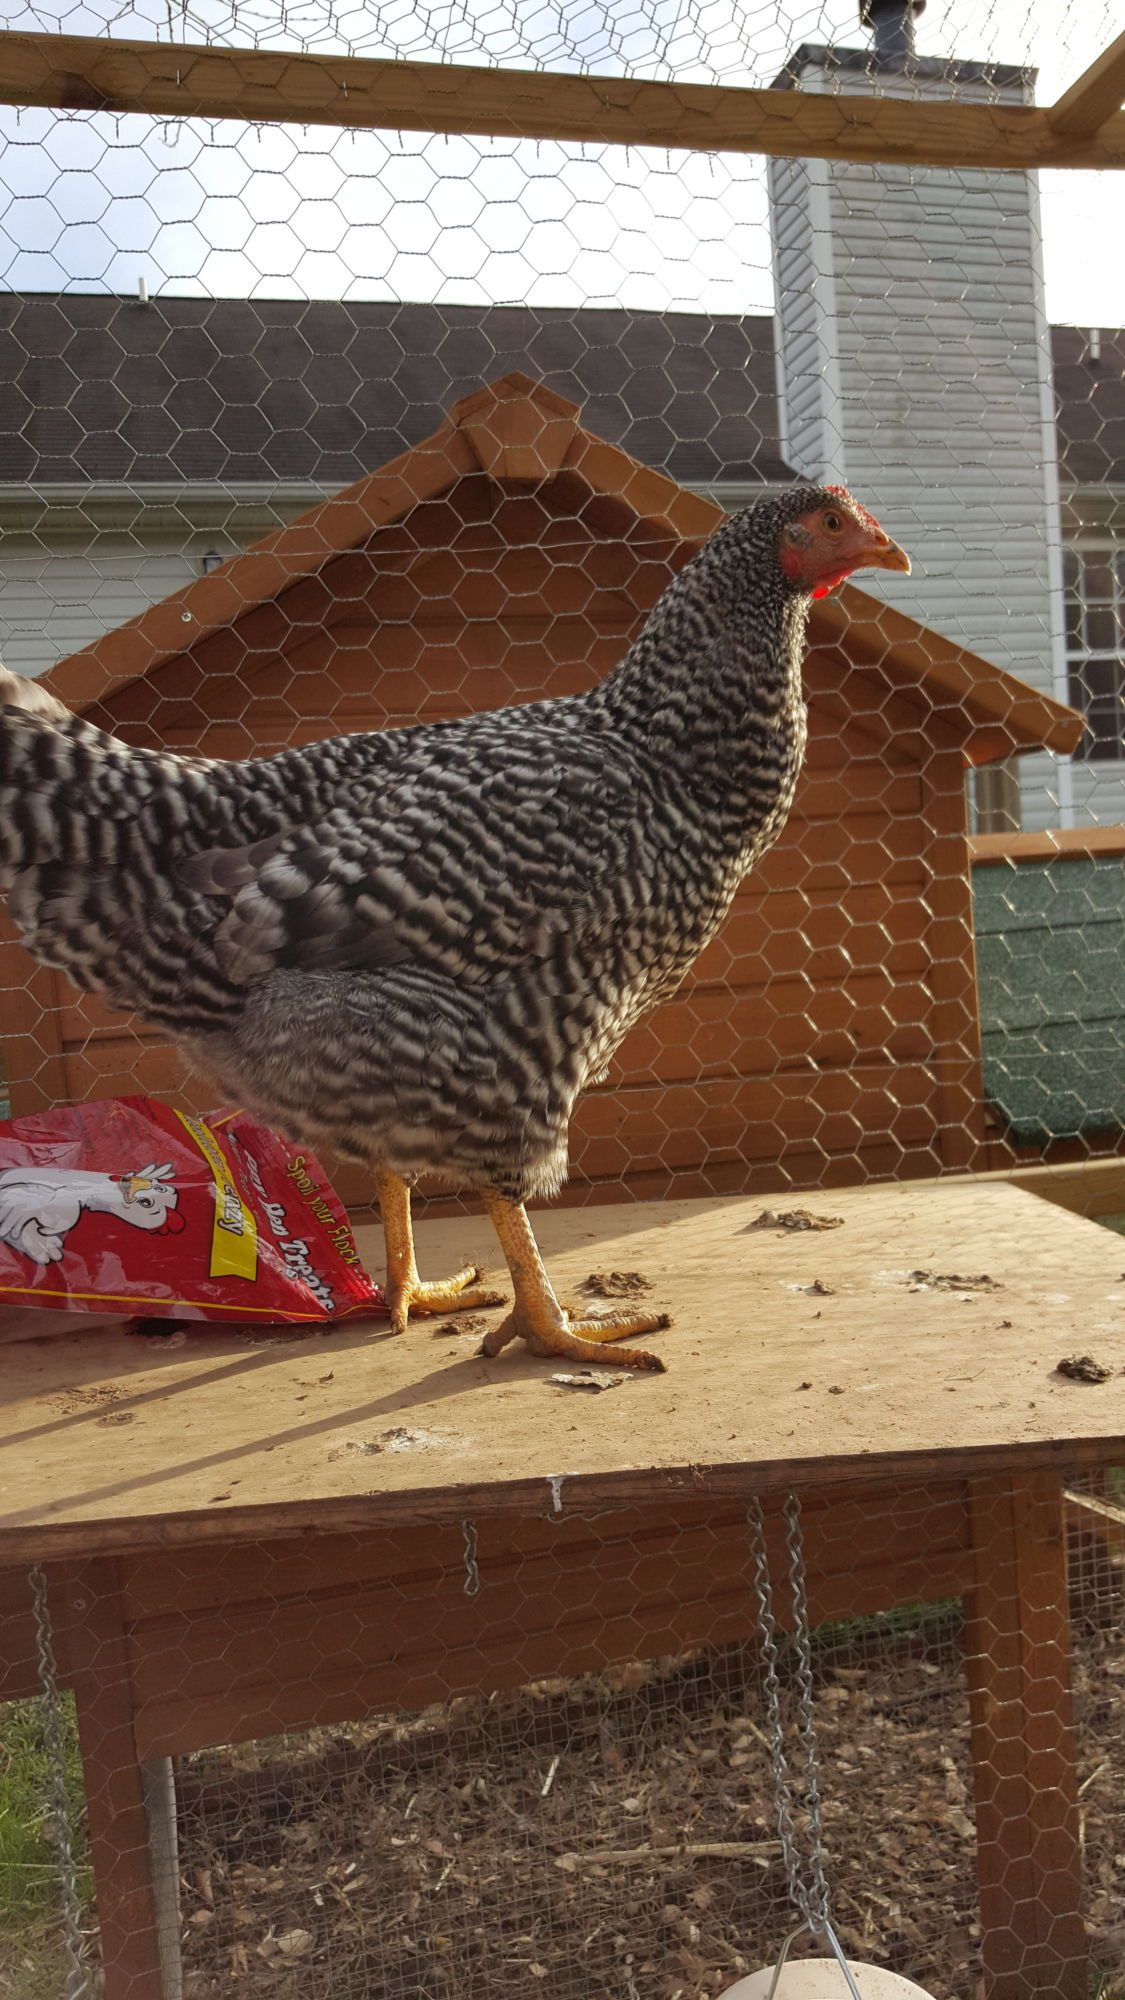 Lola the Barred Rock